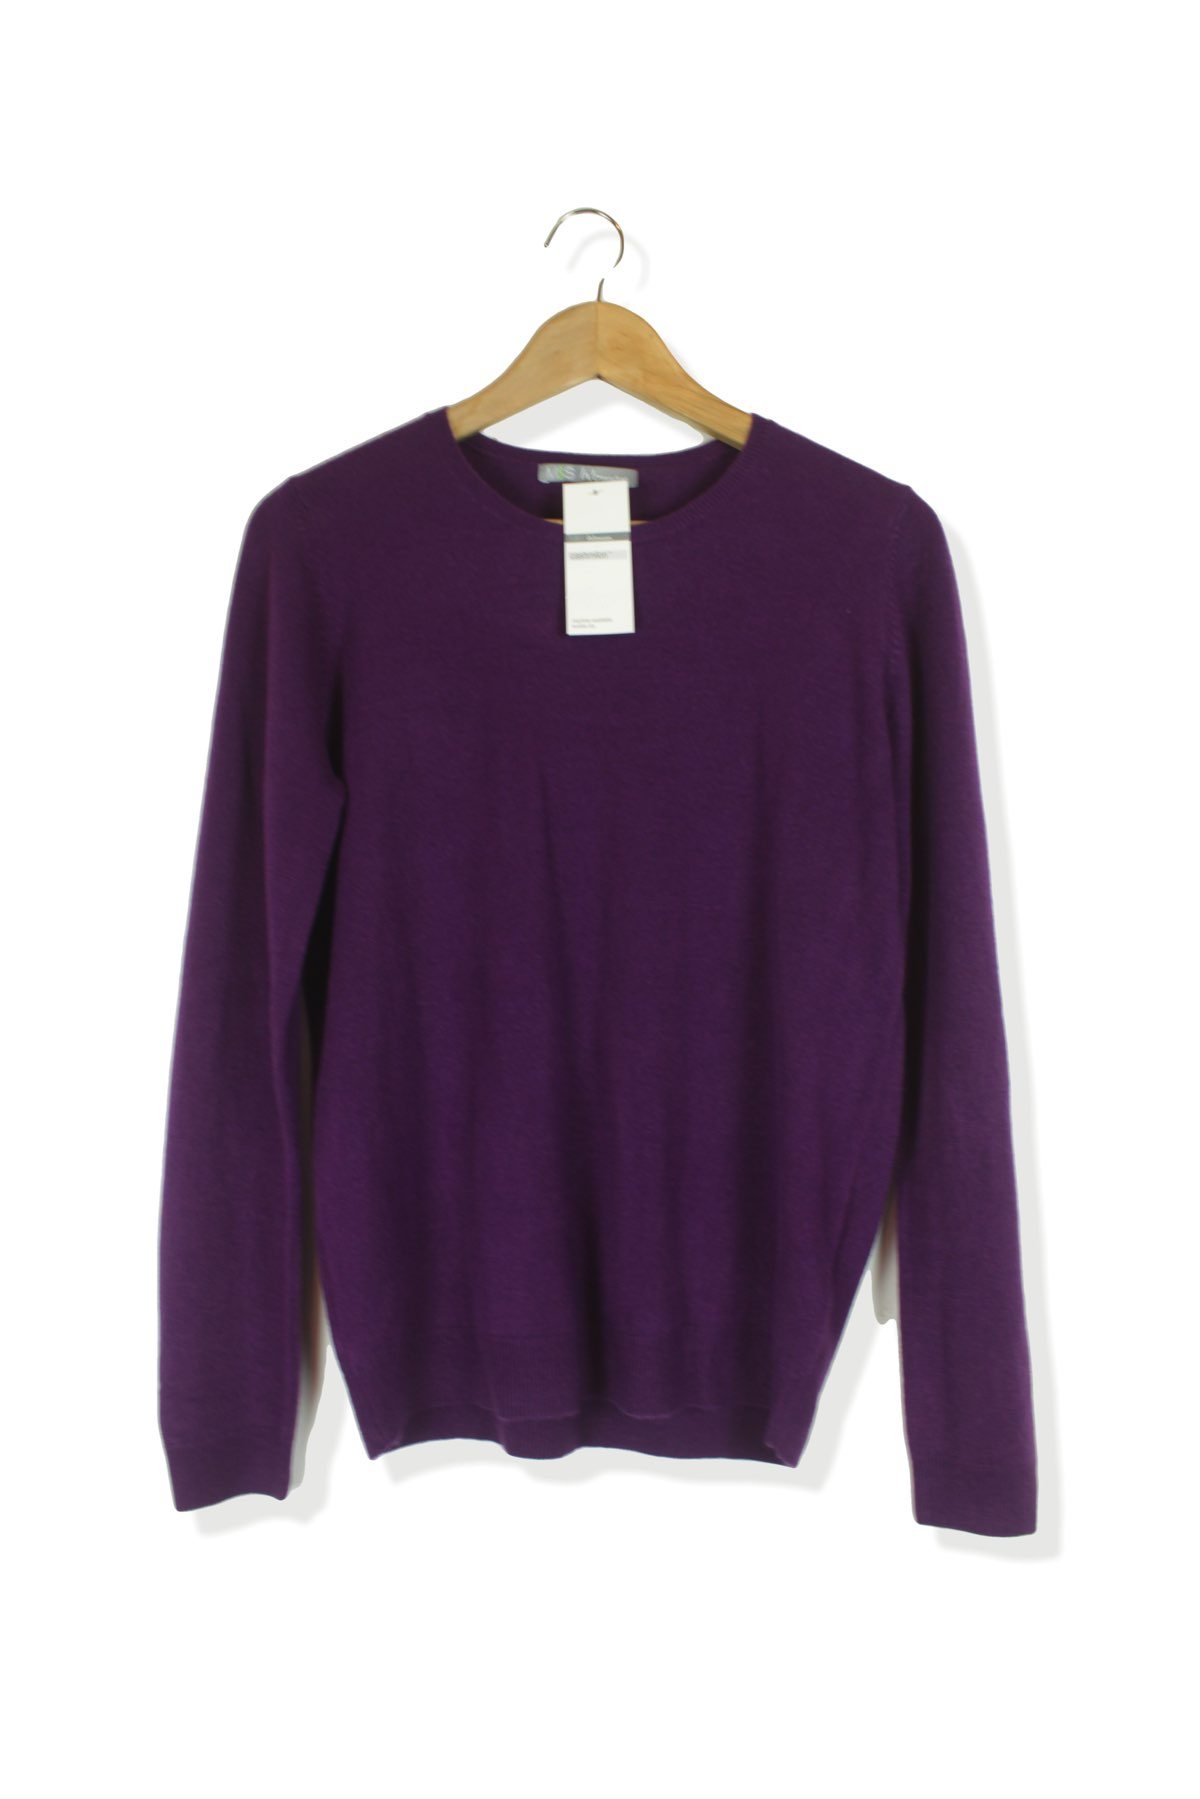 Co And Jumpers Cardigans Women amp; Oafo Marks Second Spencer qPwOngwv